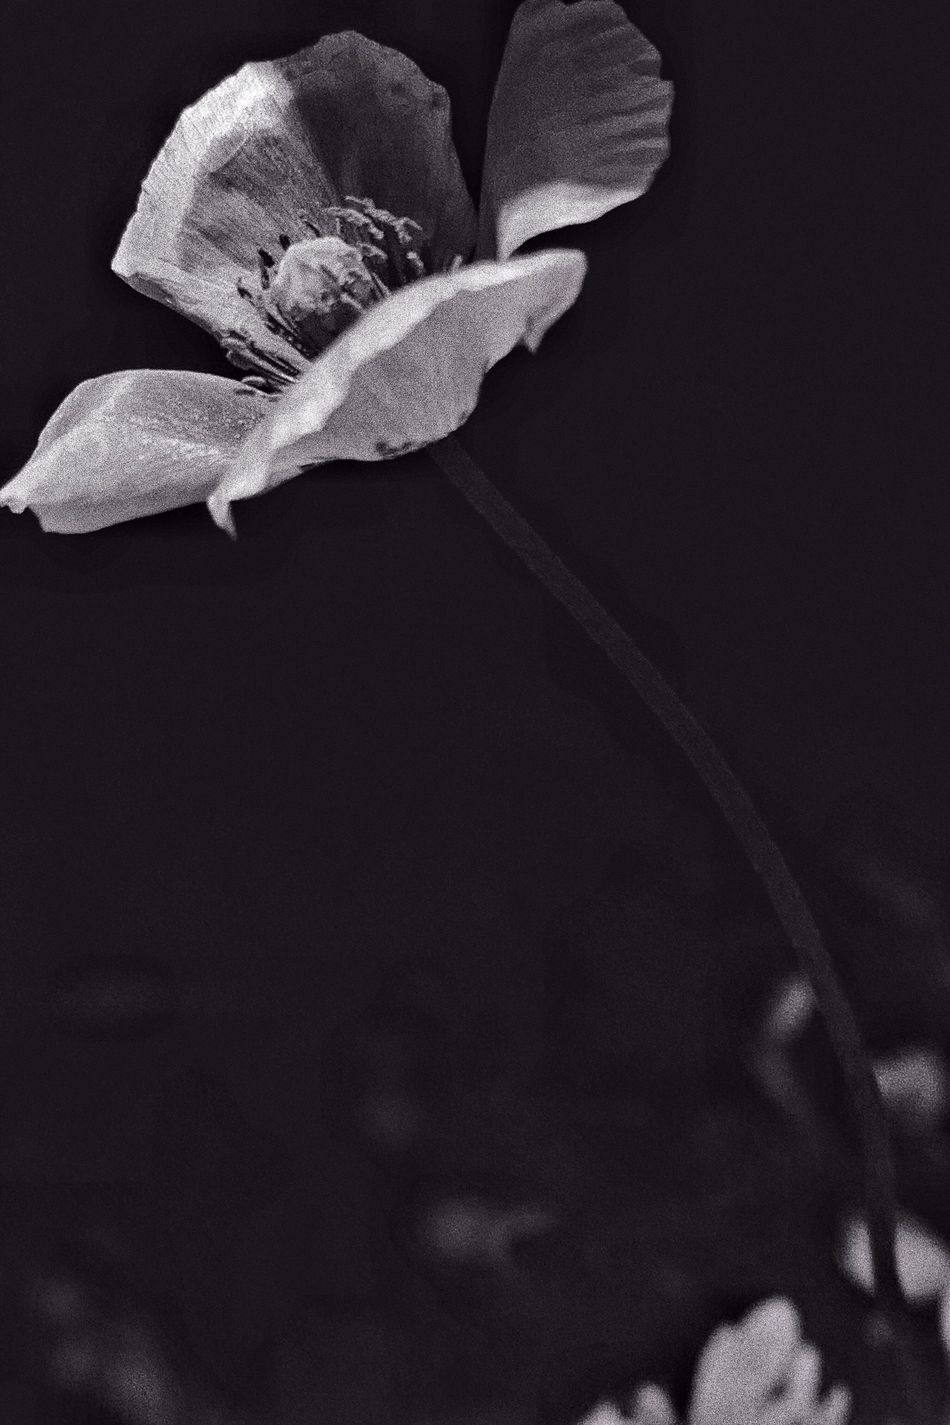 Flower Petal Fragility Flower Head Beauty In Nature Growth Freshness Nature Plant Wildflower Poppy Flowers Poppy Weeds Are Beautiful Too Bnw Noir Et Blanc Monochrome Cocrico 芥子 ケシ nNo PeoplelLeafbBloomingdDayoOutdoors